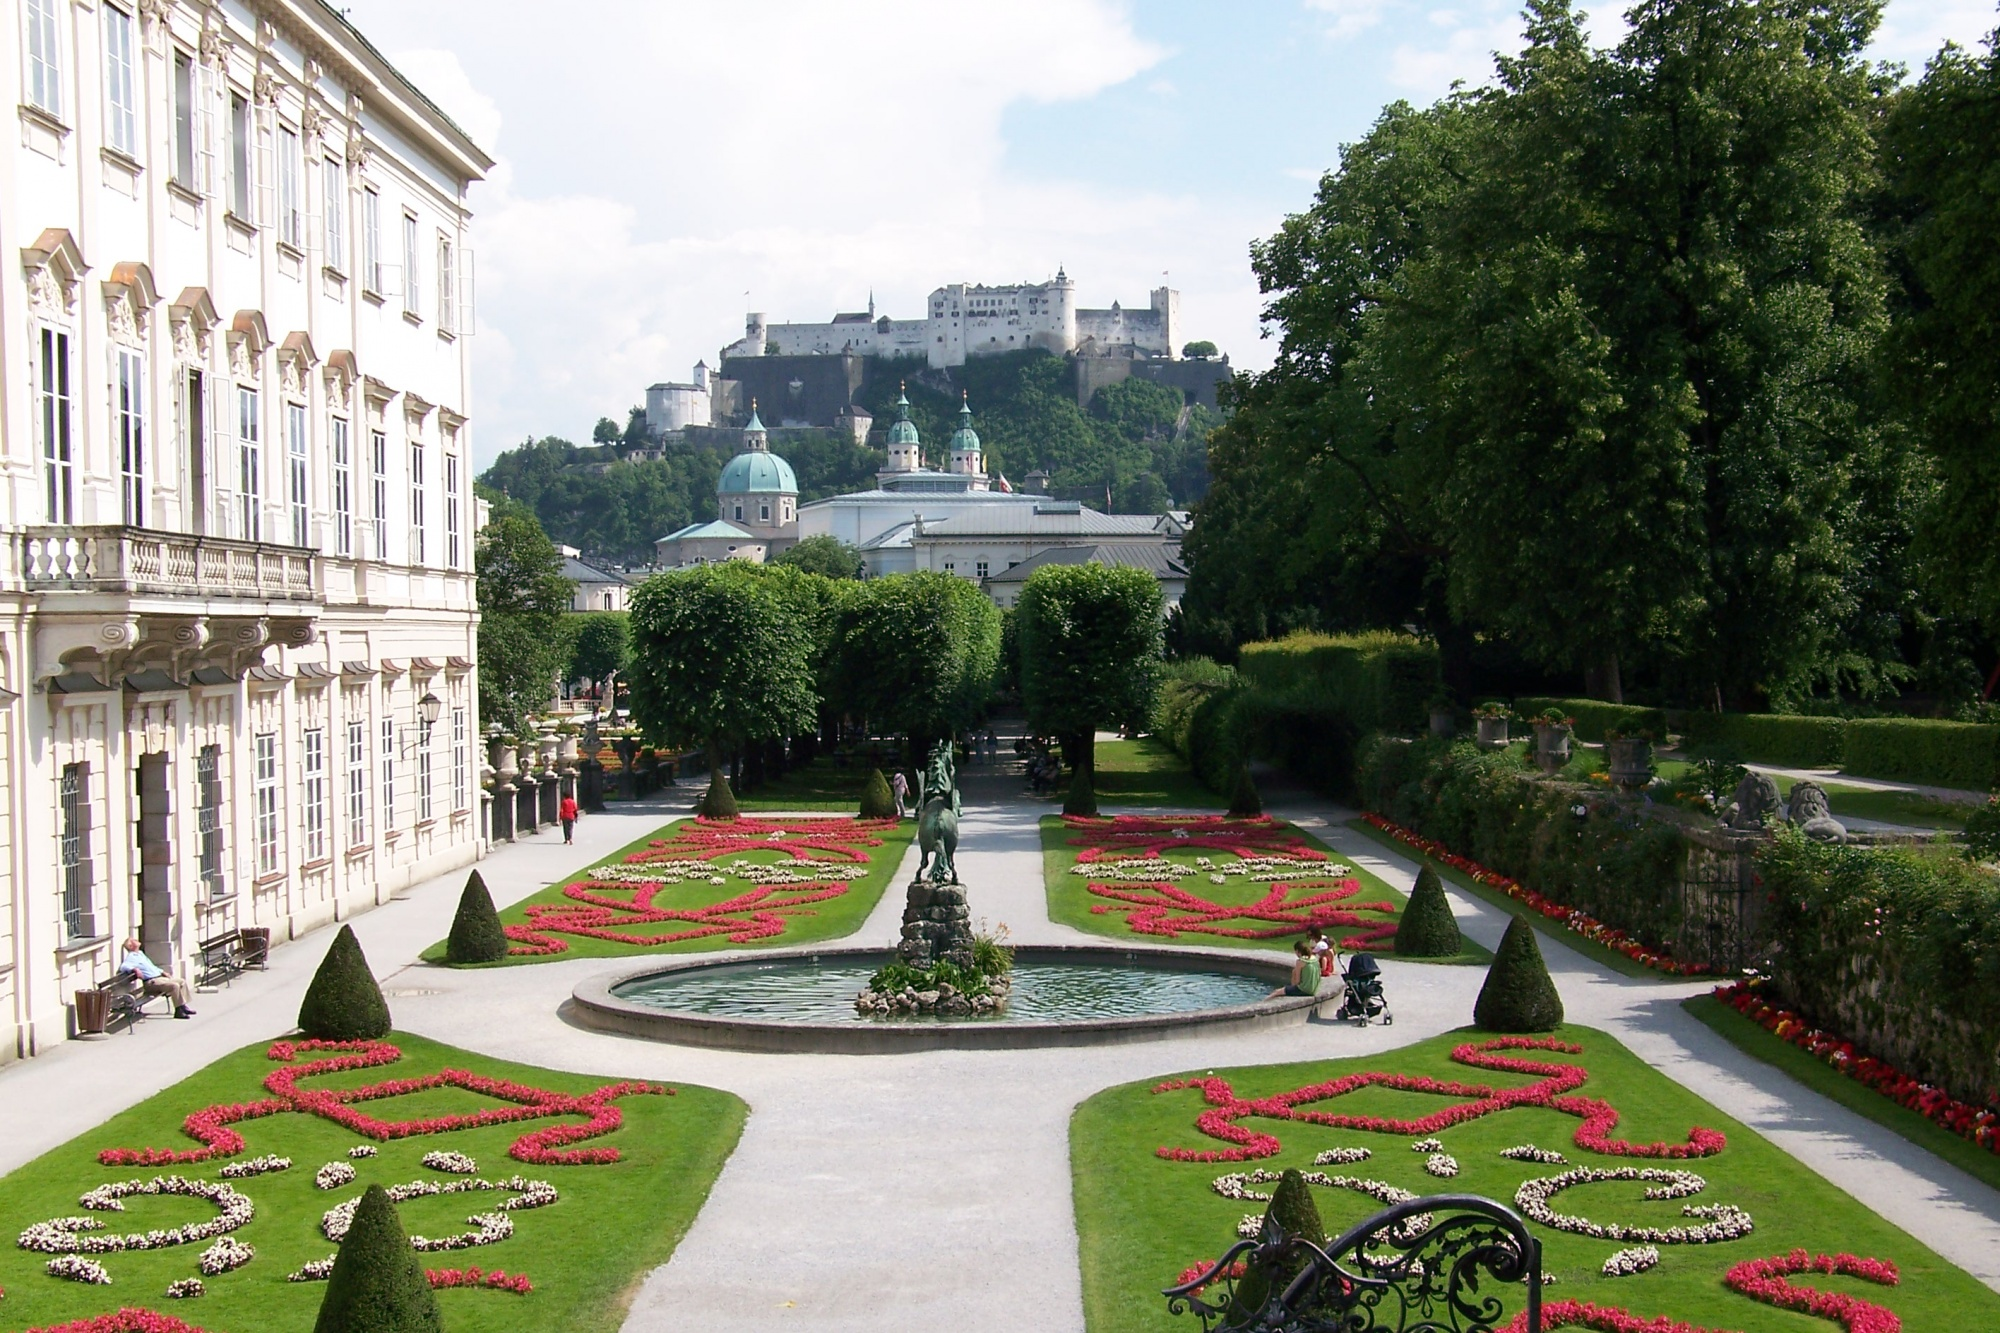 awesome movie locations, The Sound of Music, Mirabell Gardens, Salzburg, Germany